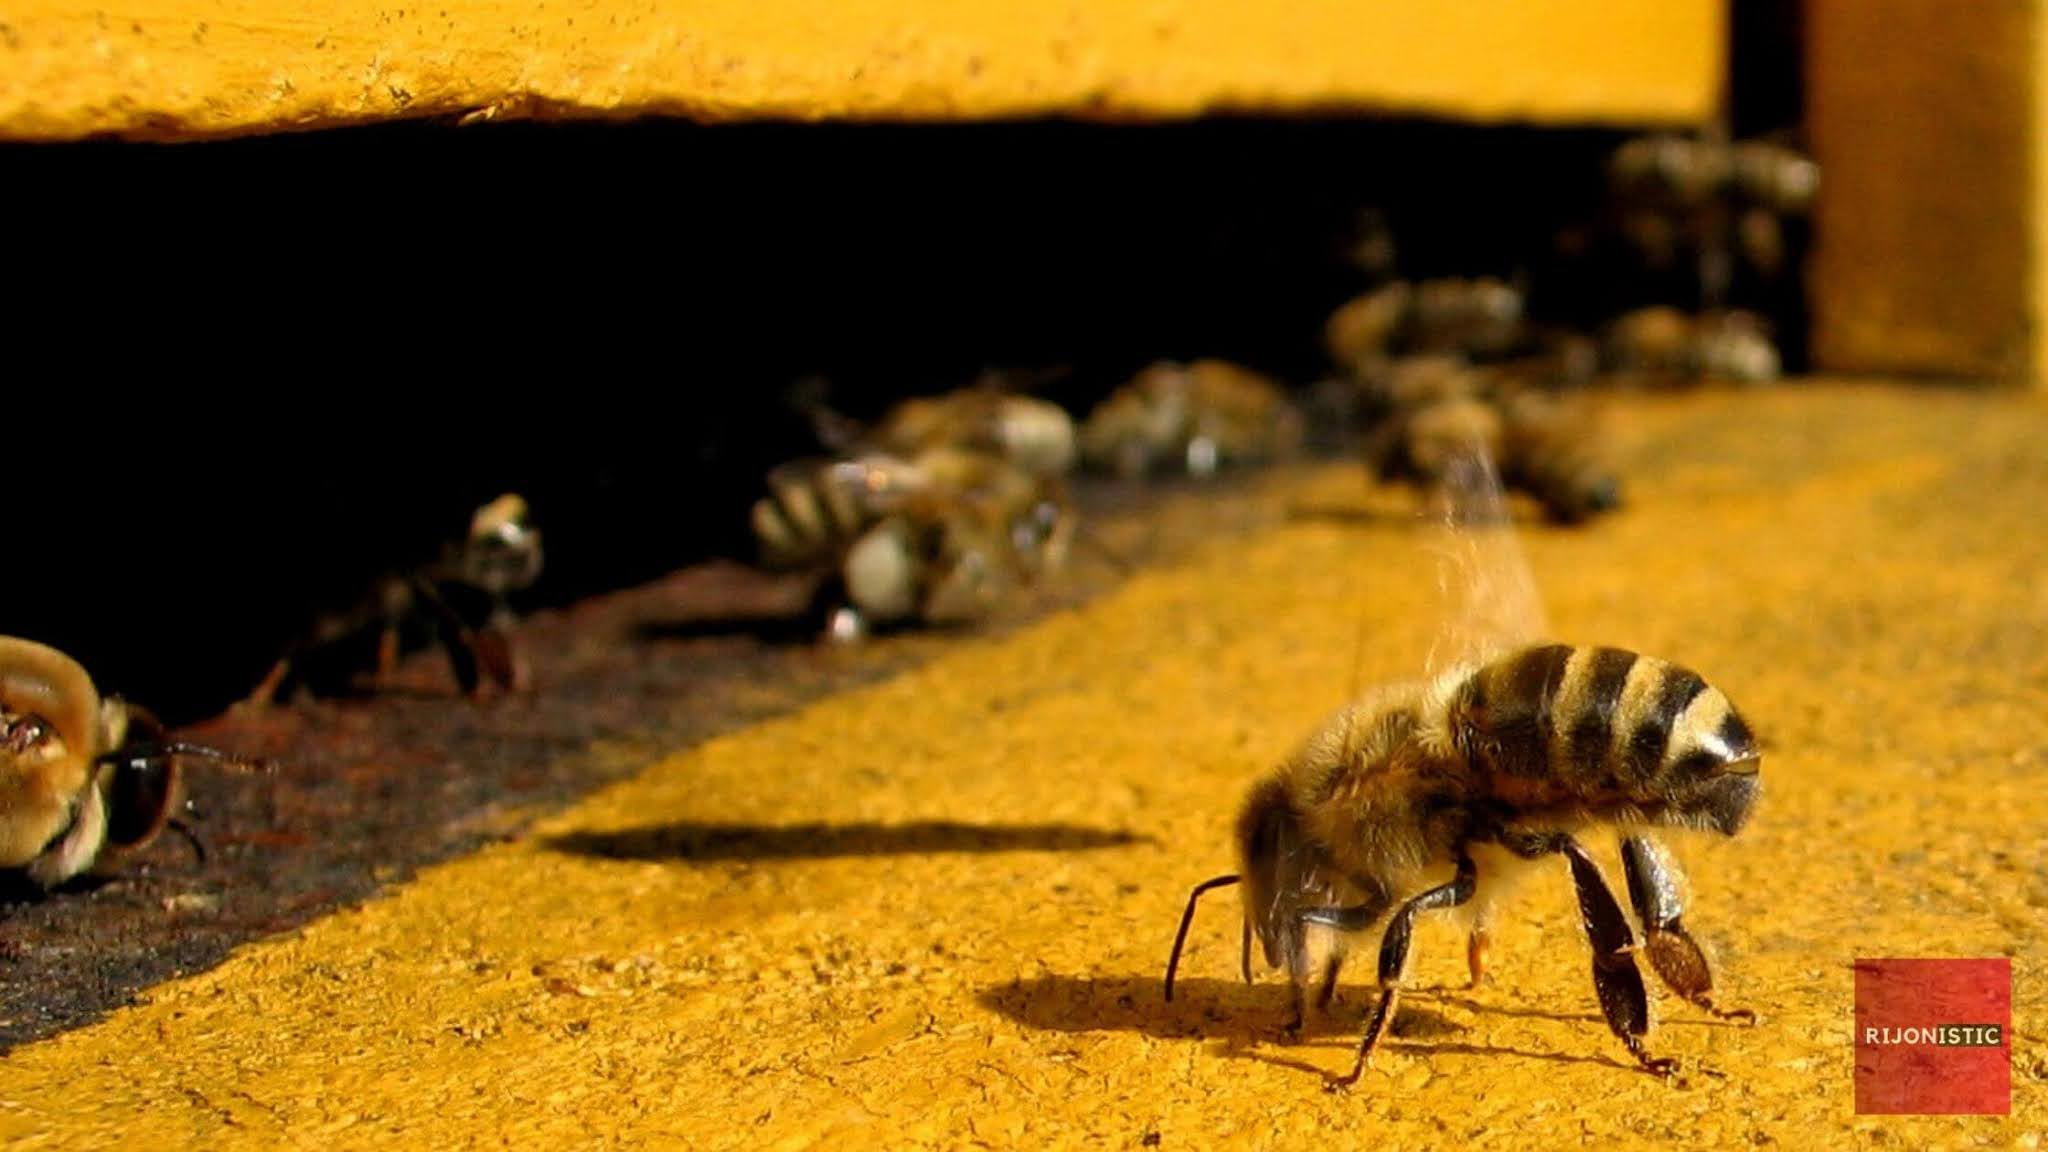 Undertaker Bees, Dead Honeybee, Why we don't see any dead bees near hive,